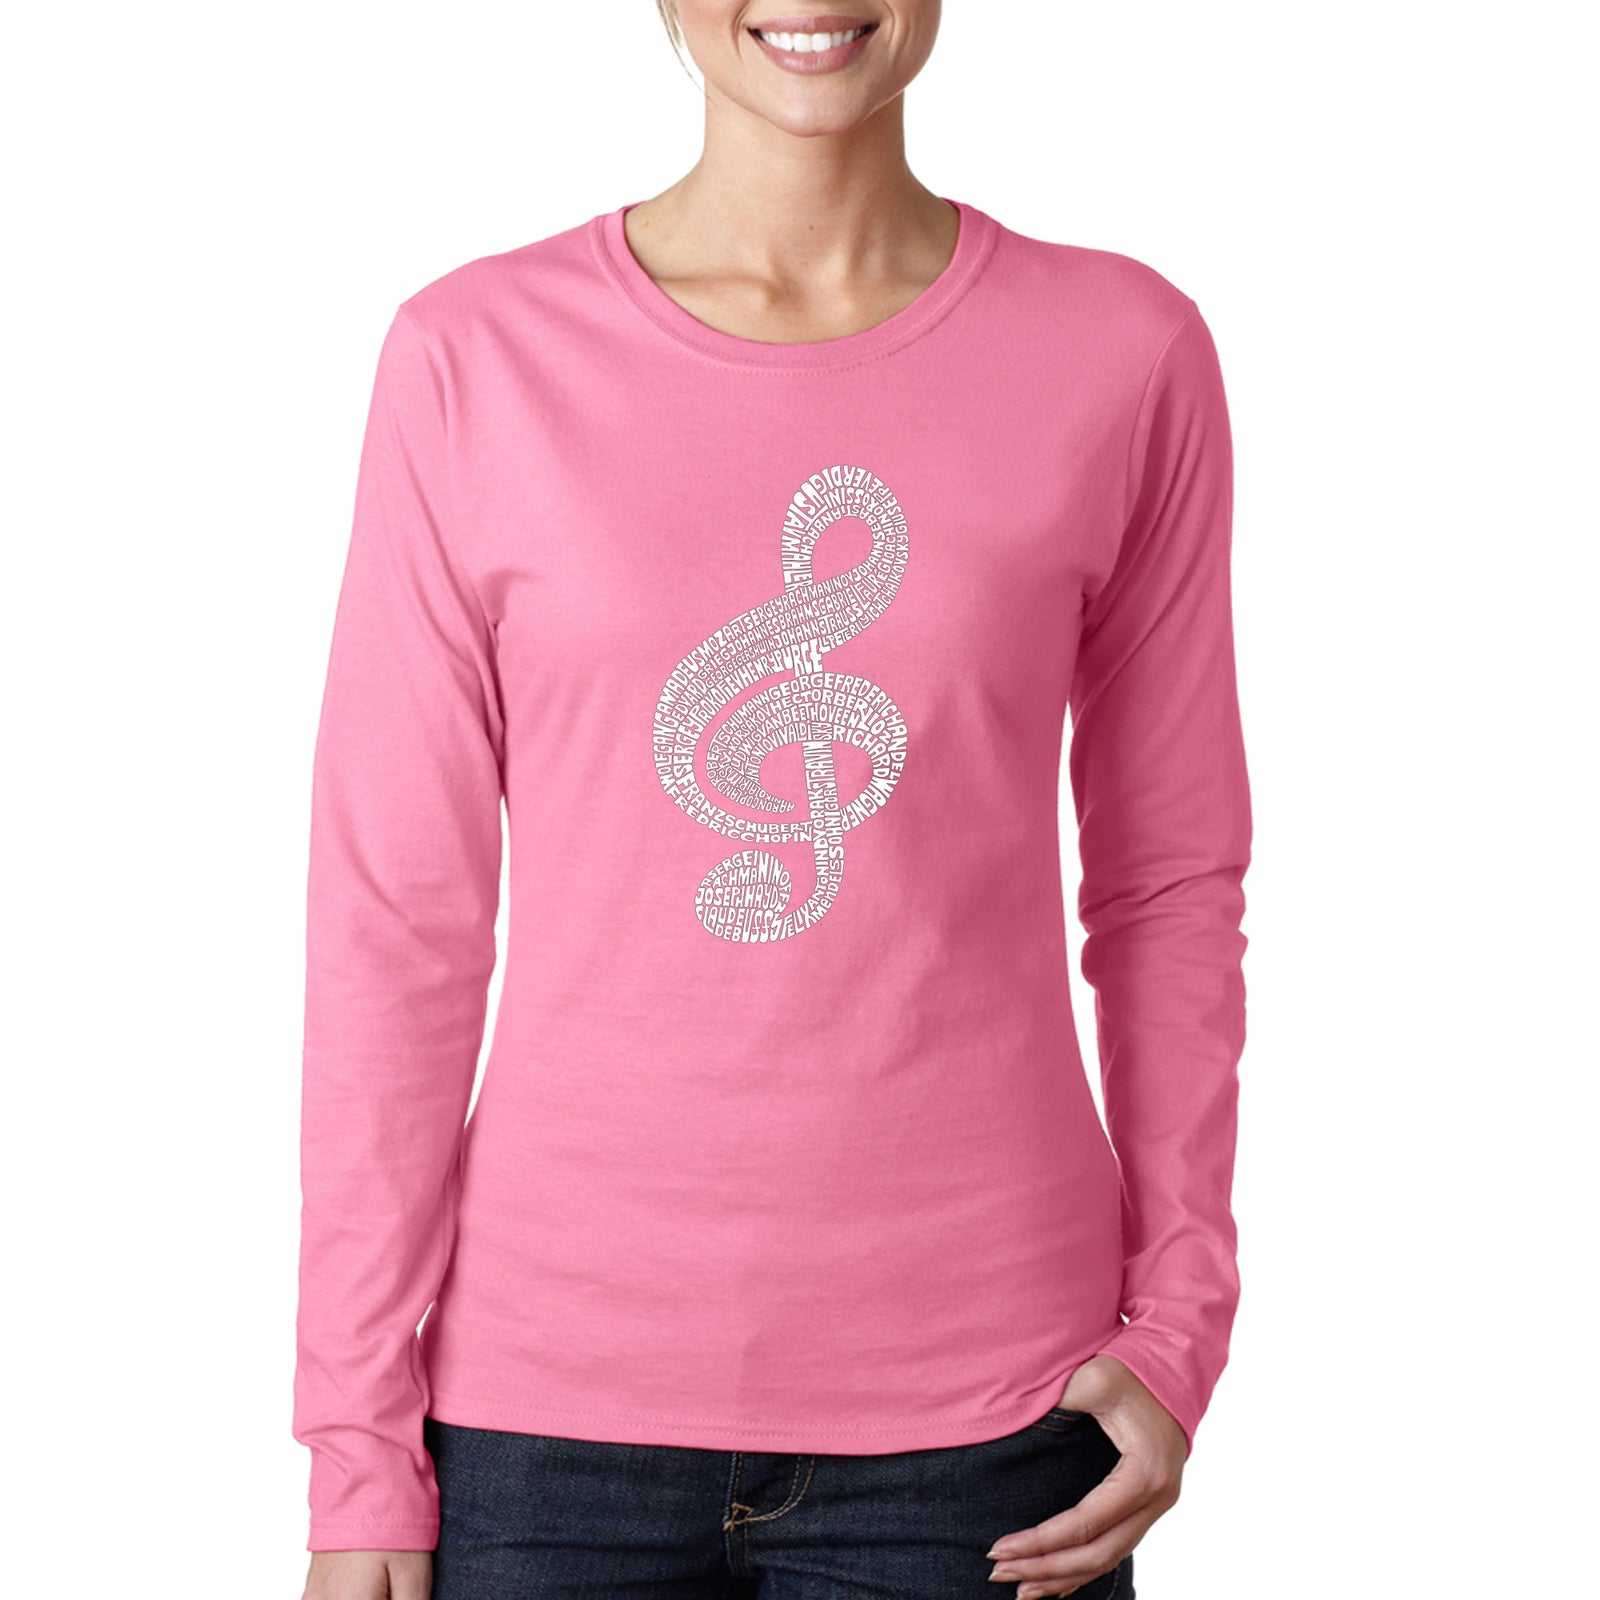 Women's Long Sleeve T-Shirt - Music Note